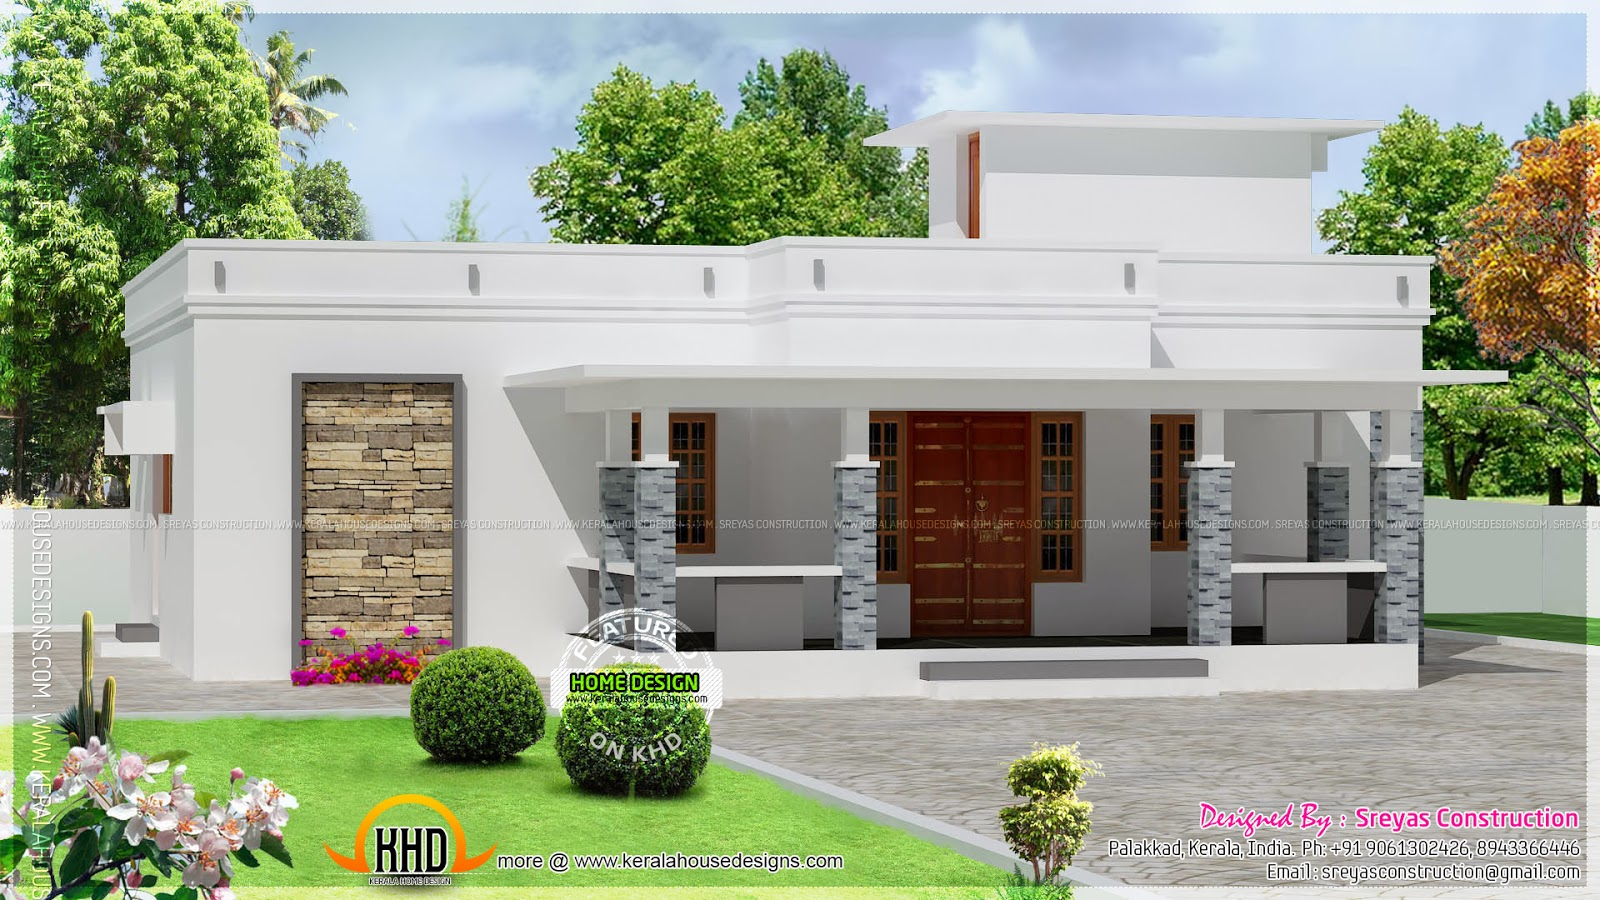 Thoughtskoto for Award winning house designs in india